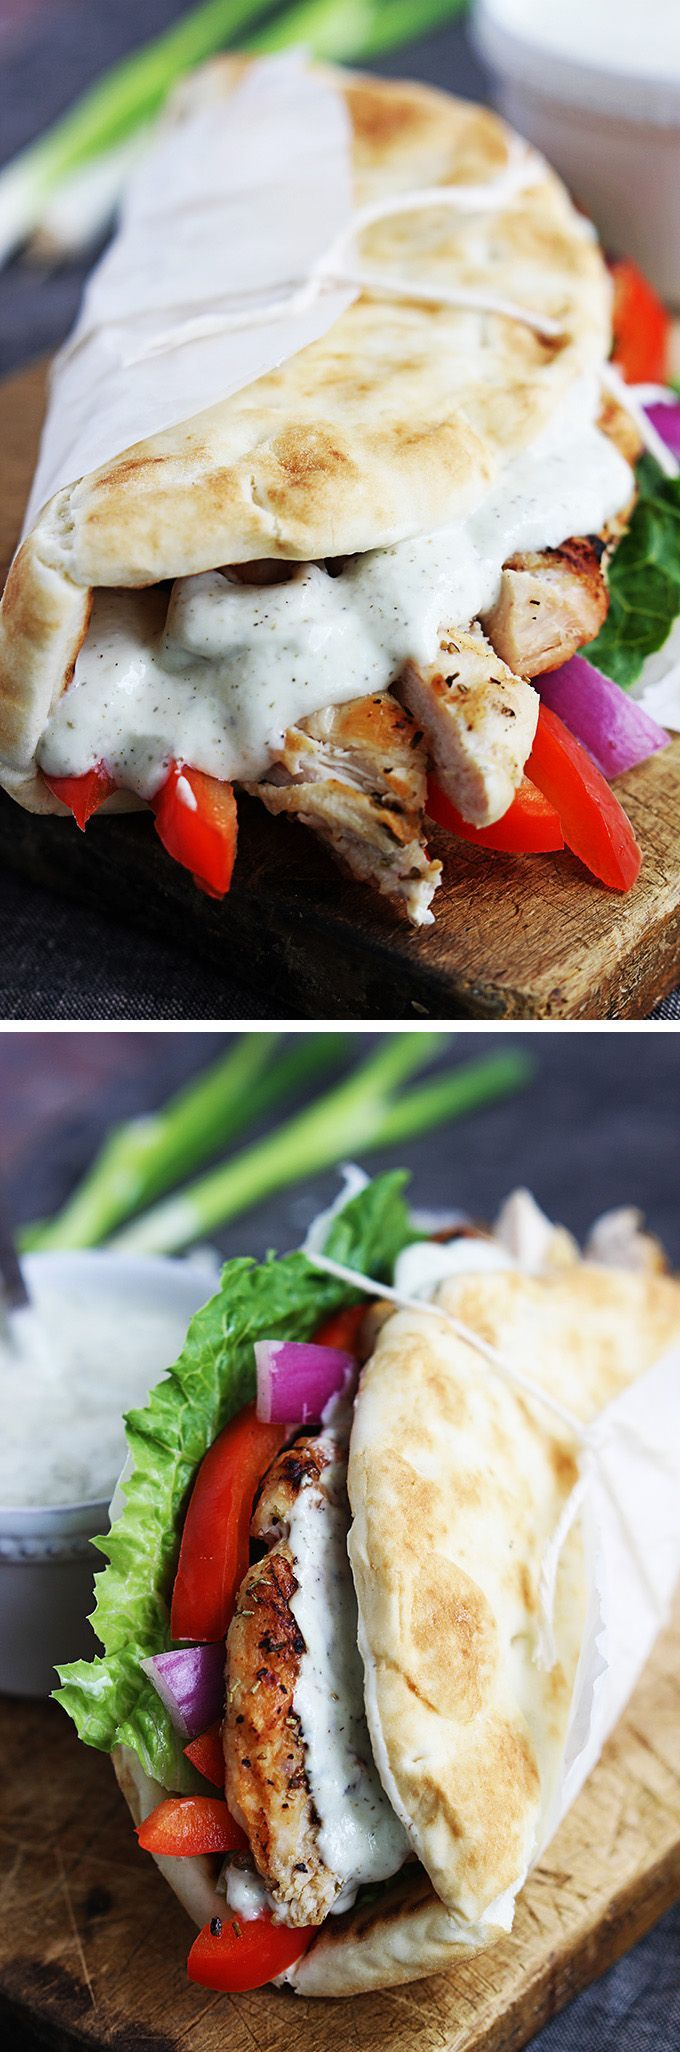 Easy Chicken Gyros & Tzatziki Sauce:  If you haven't tried these you're MISSING OUT! So yummy, healthy, and easy to whip up (in 20 minutes!) for dinner or pack for lunches during the week!